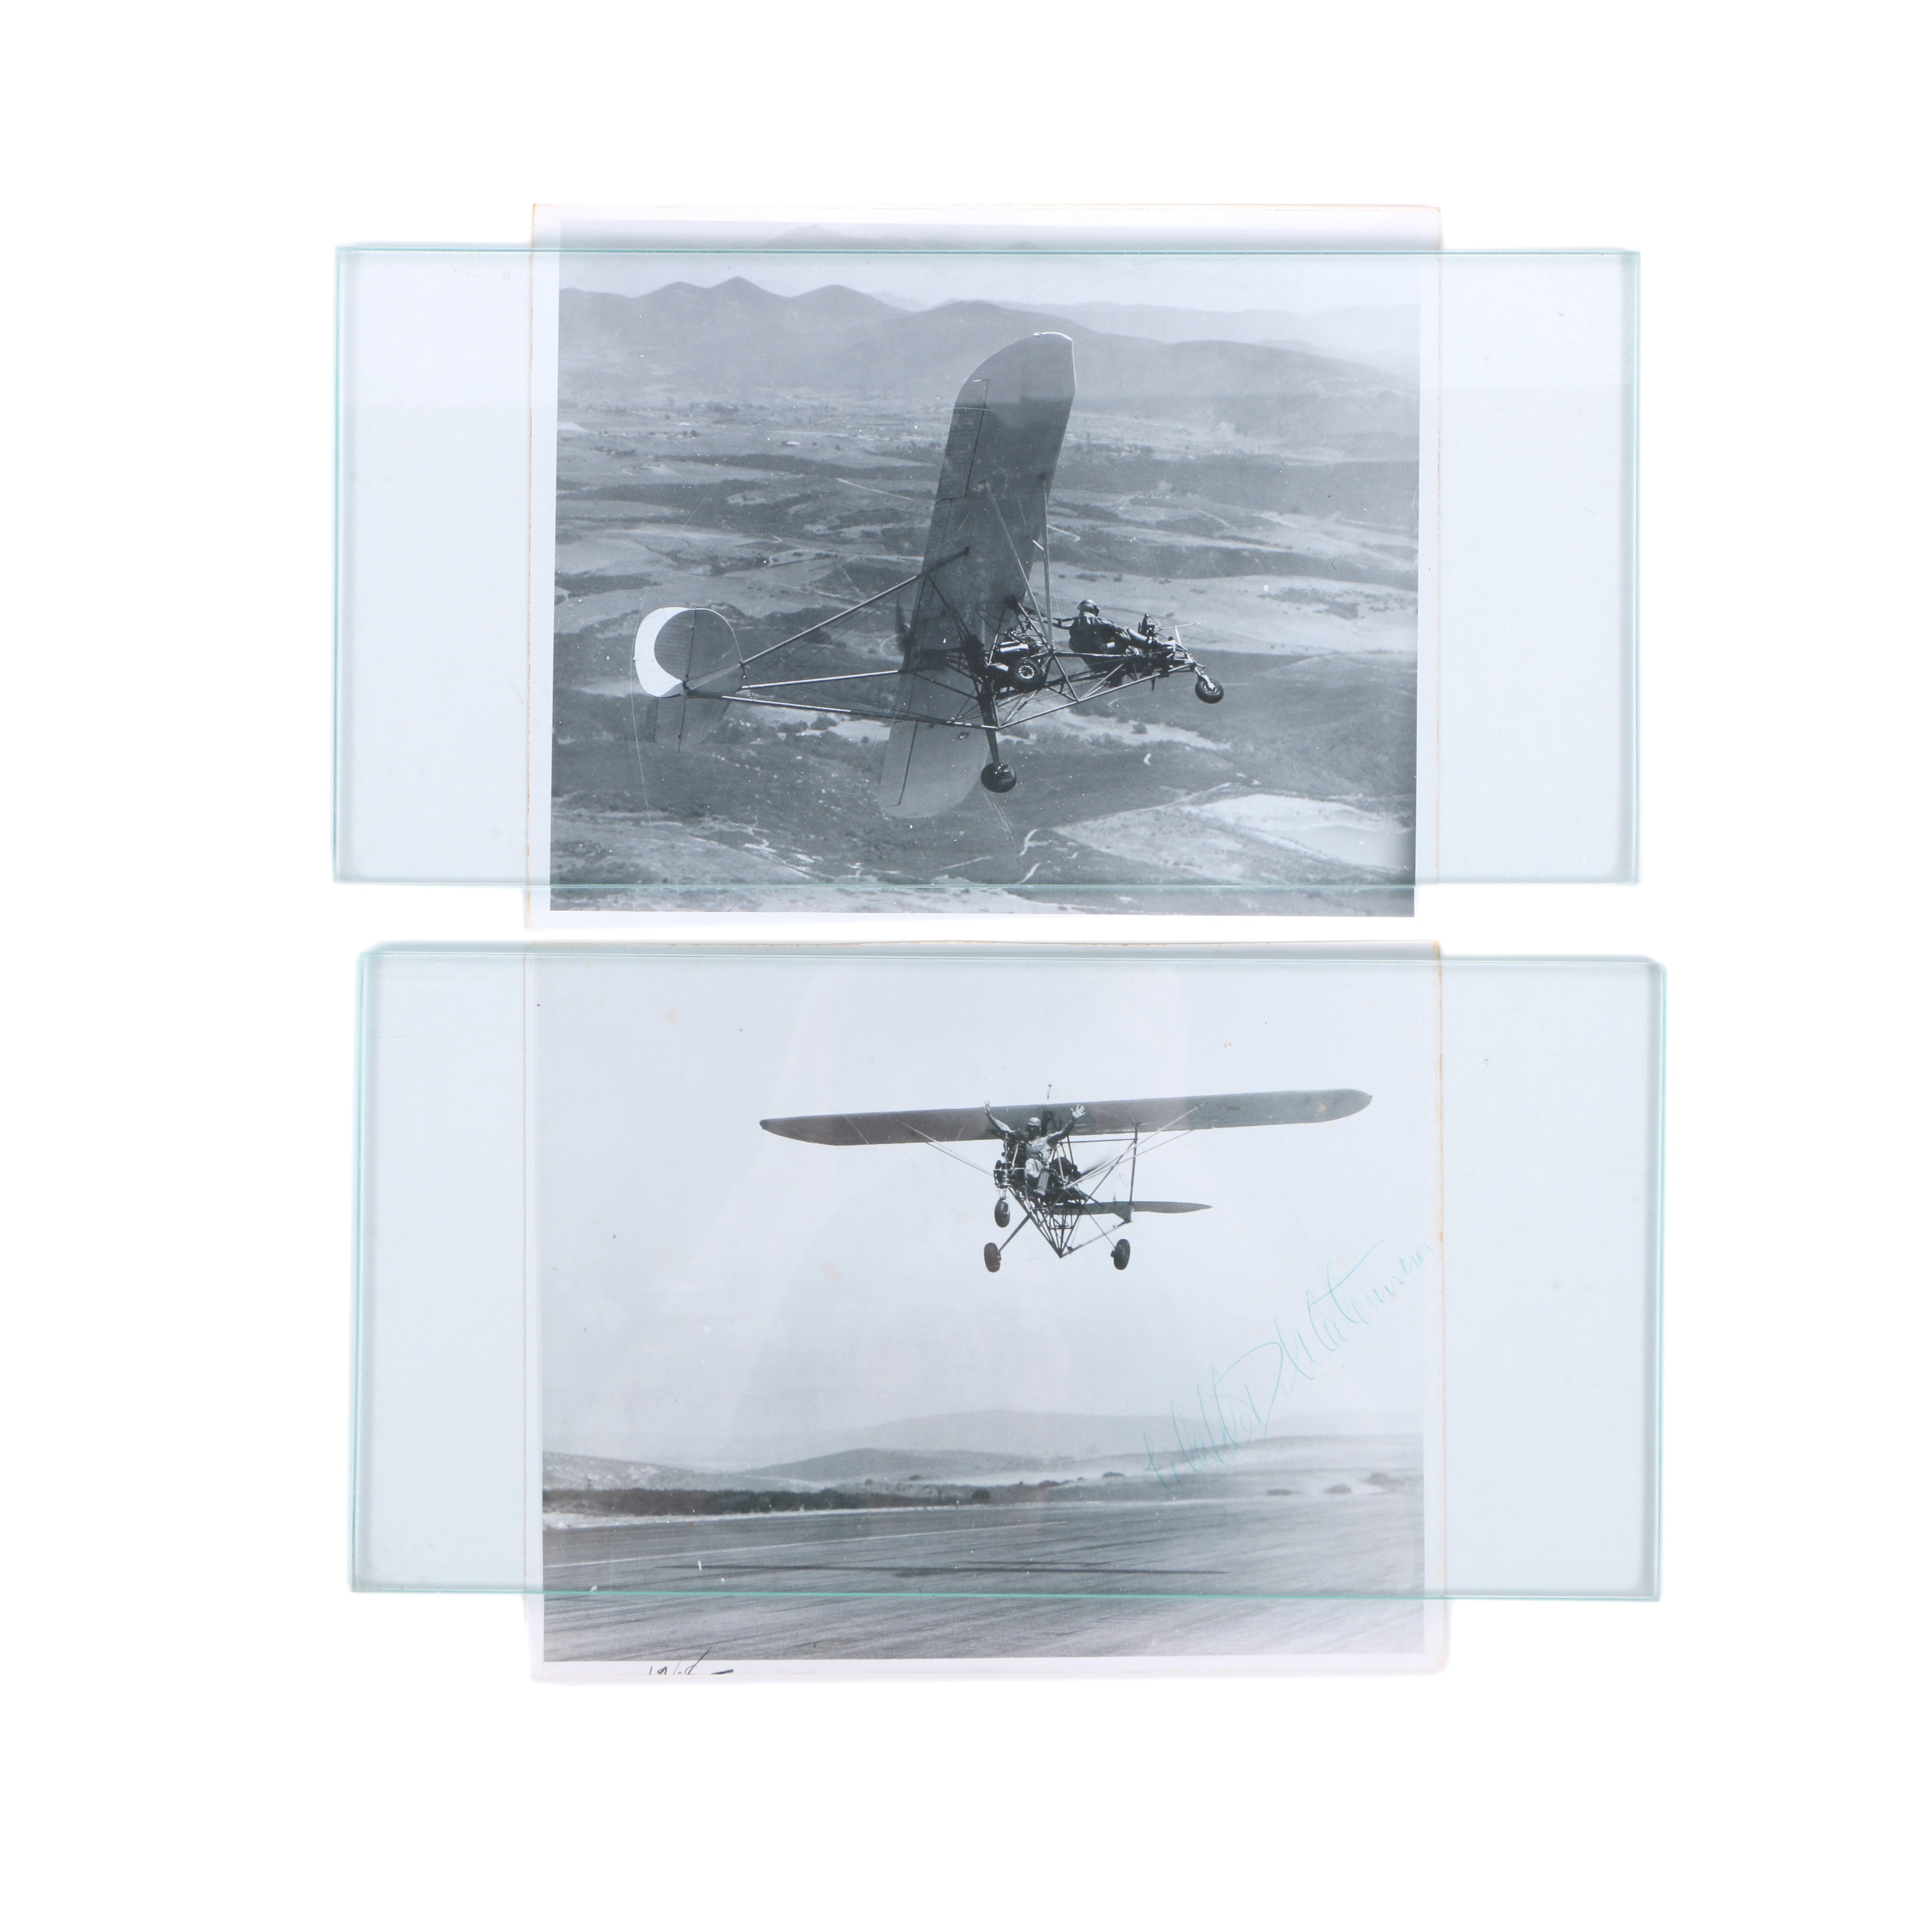 Gelatin Silver Photographs of Early Aviation with Waldo Waterman Signature